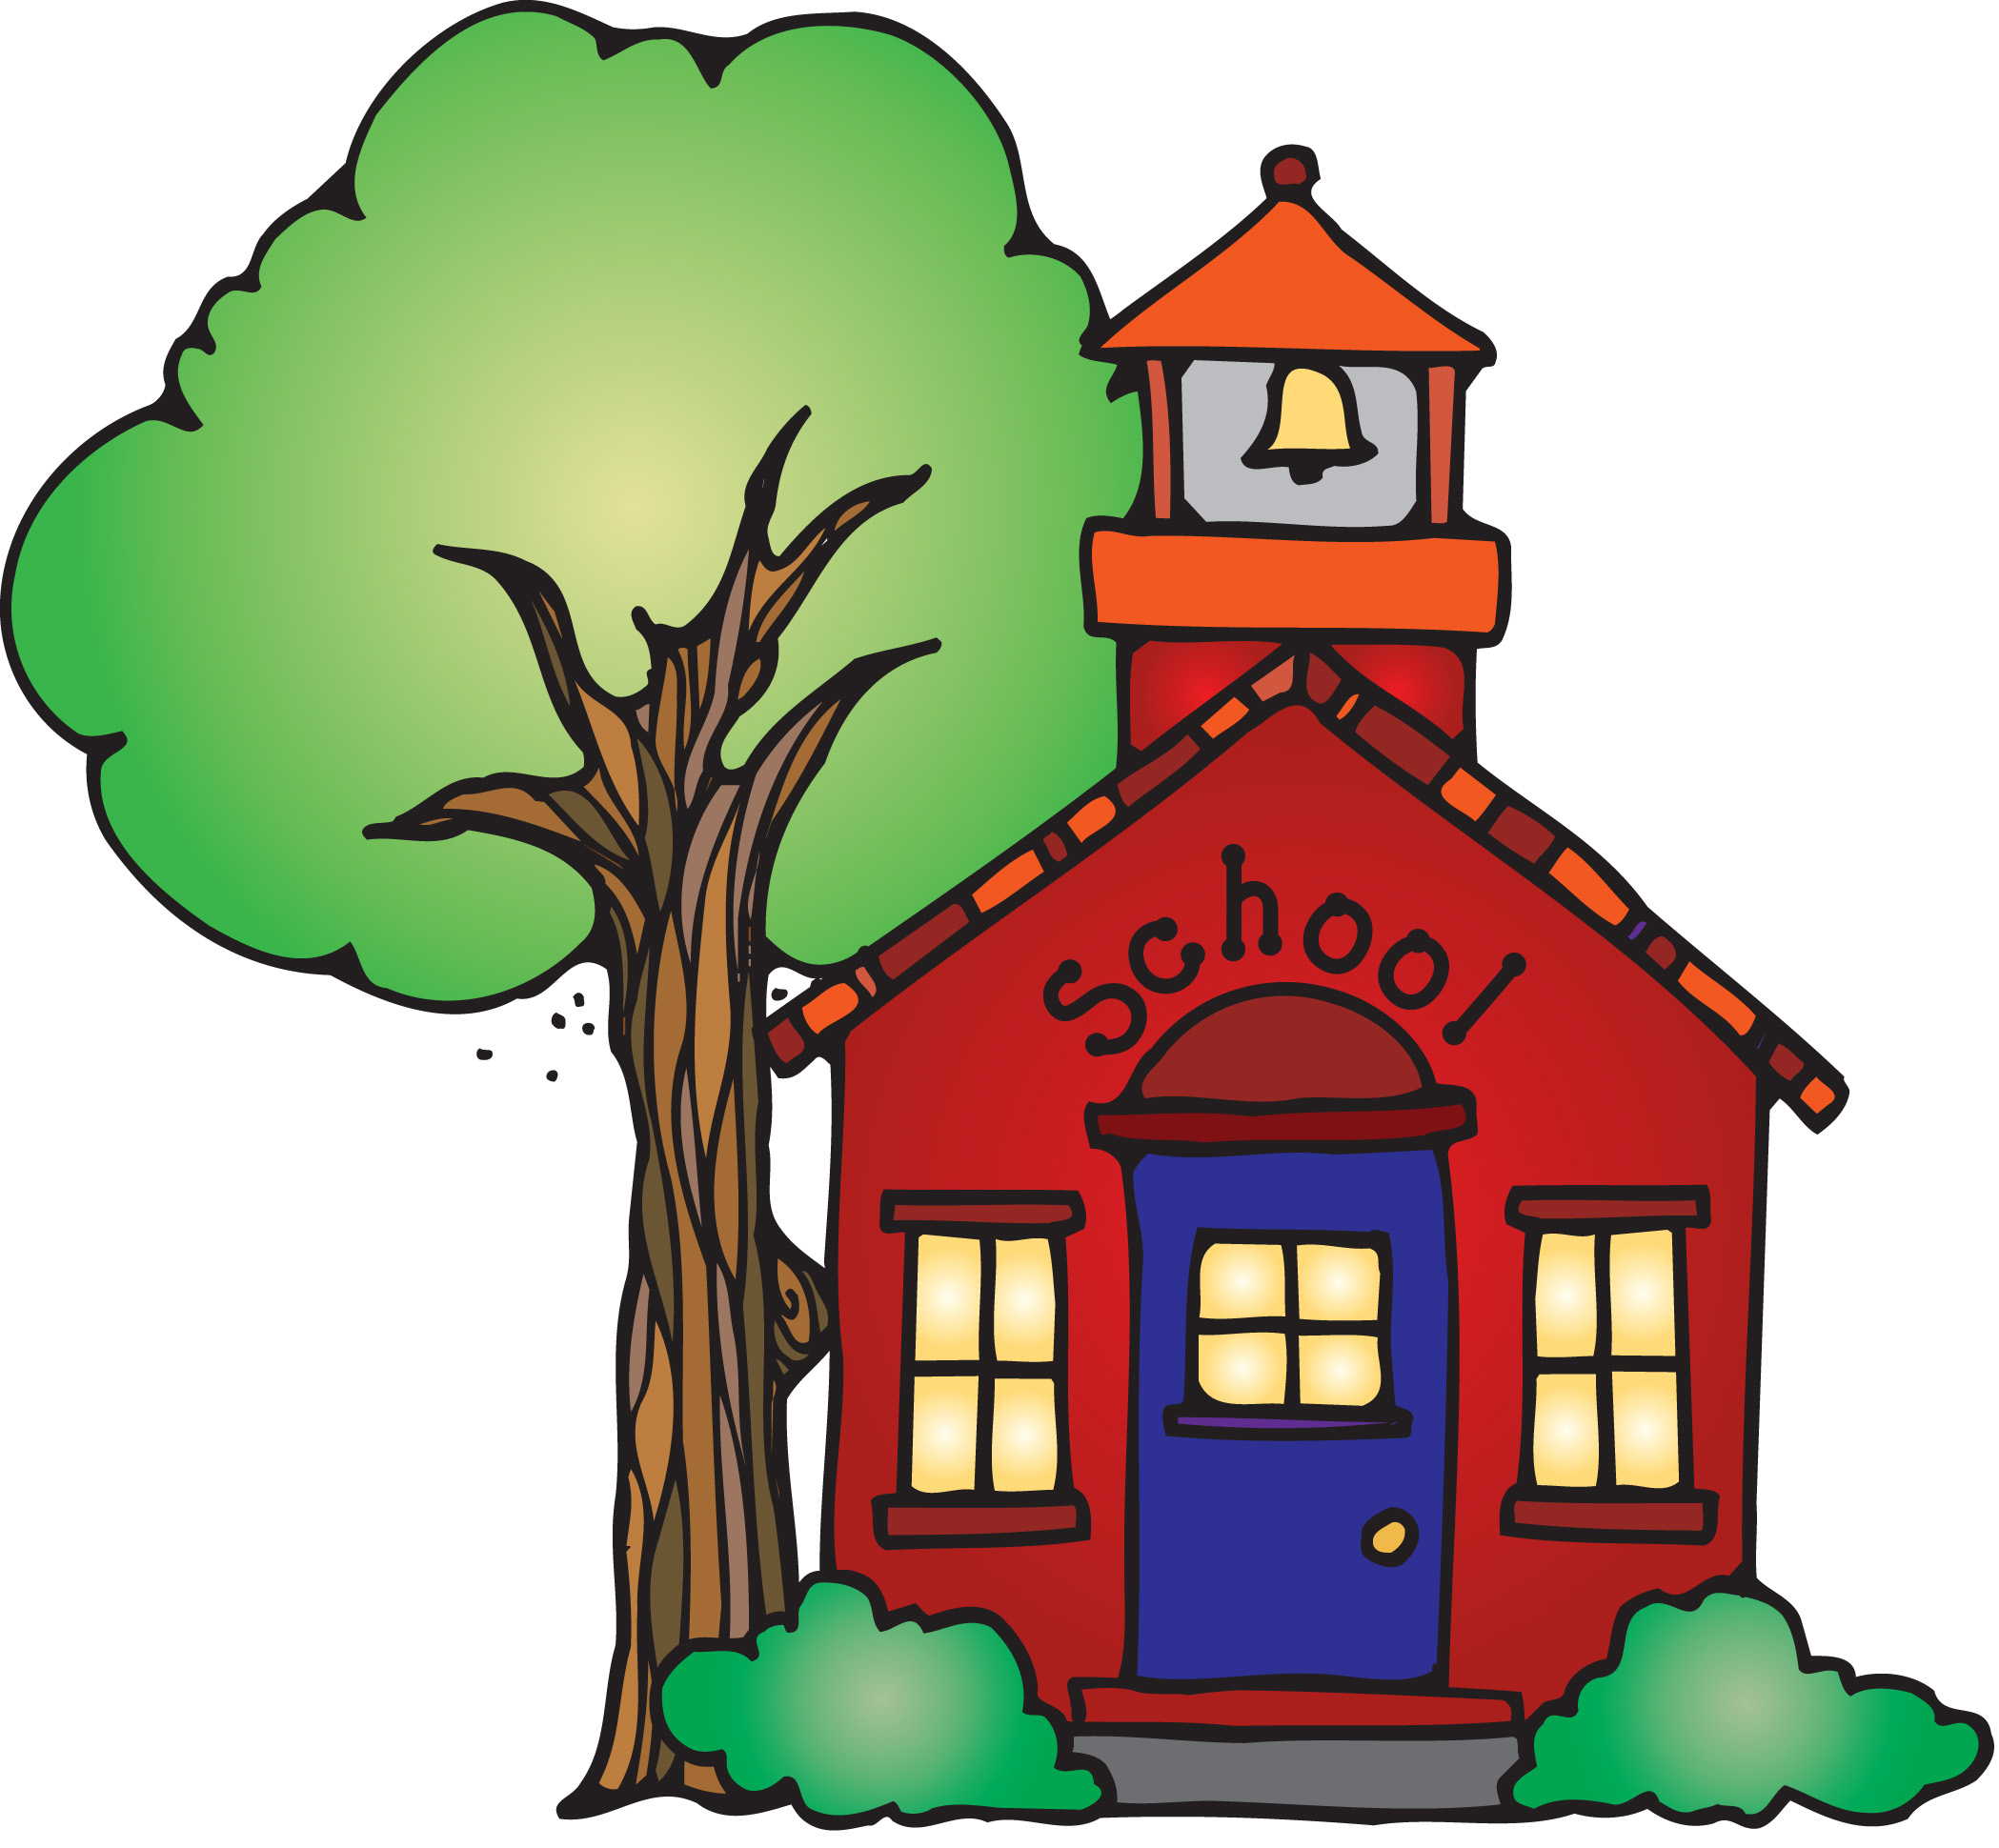 Building clipart pre school Clip Clipart on library Download